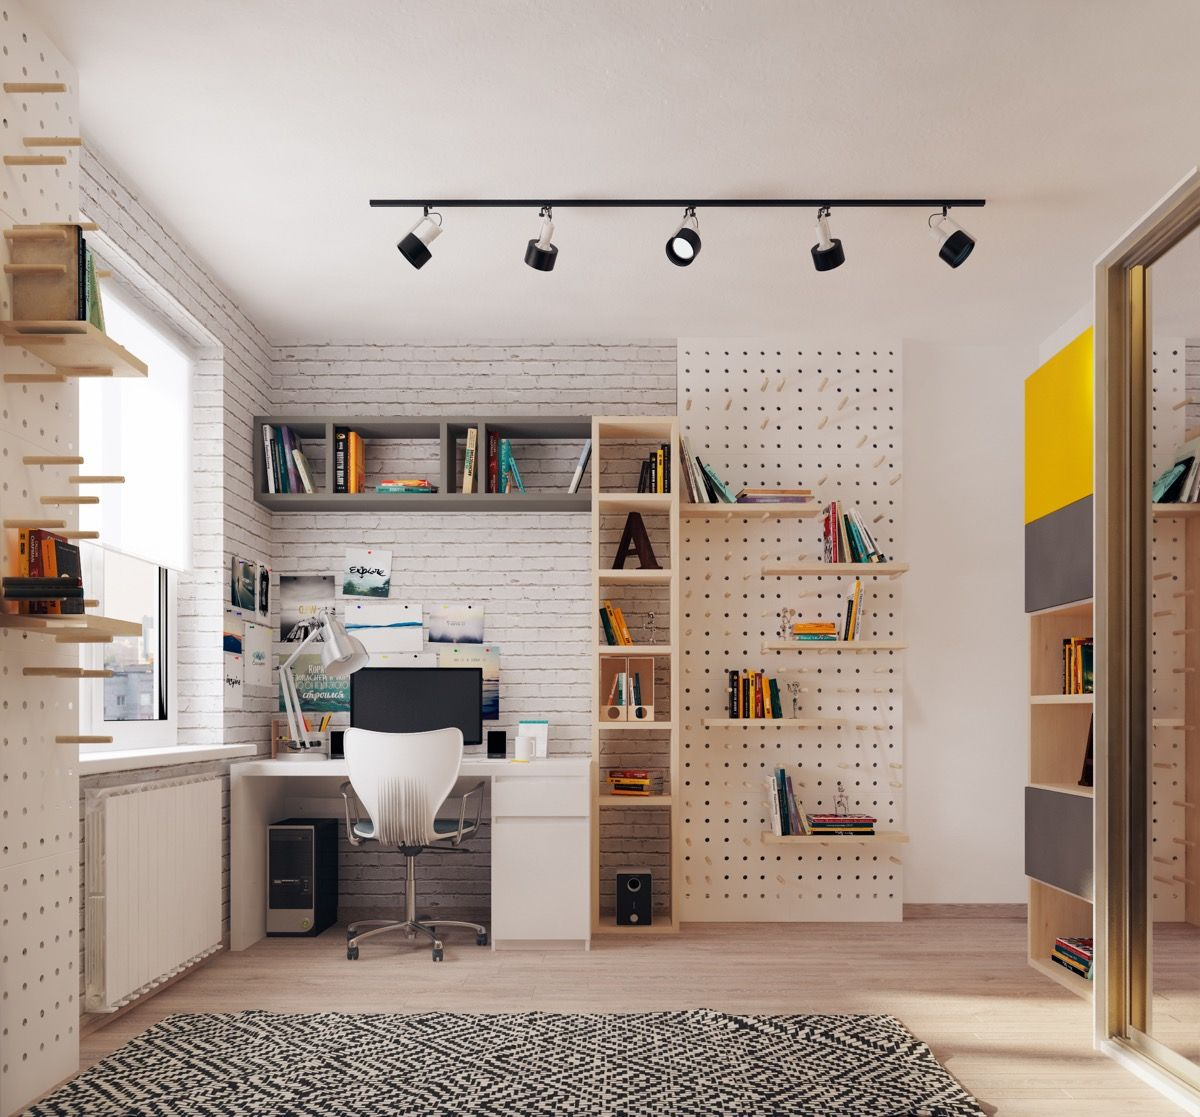 Design Ideas Tips Inspiration: 53 Inspirational Kids' Study Space Designs And Tips You